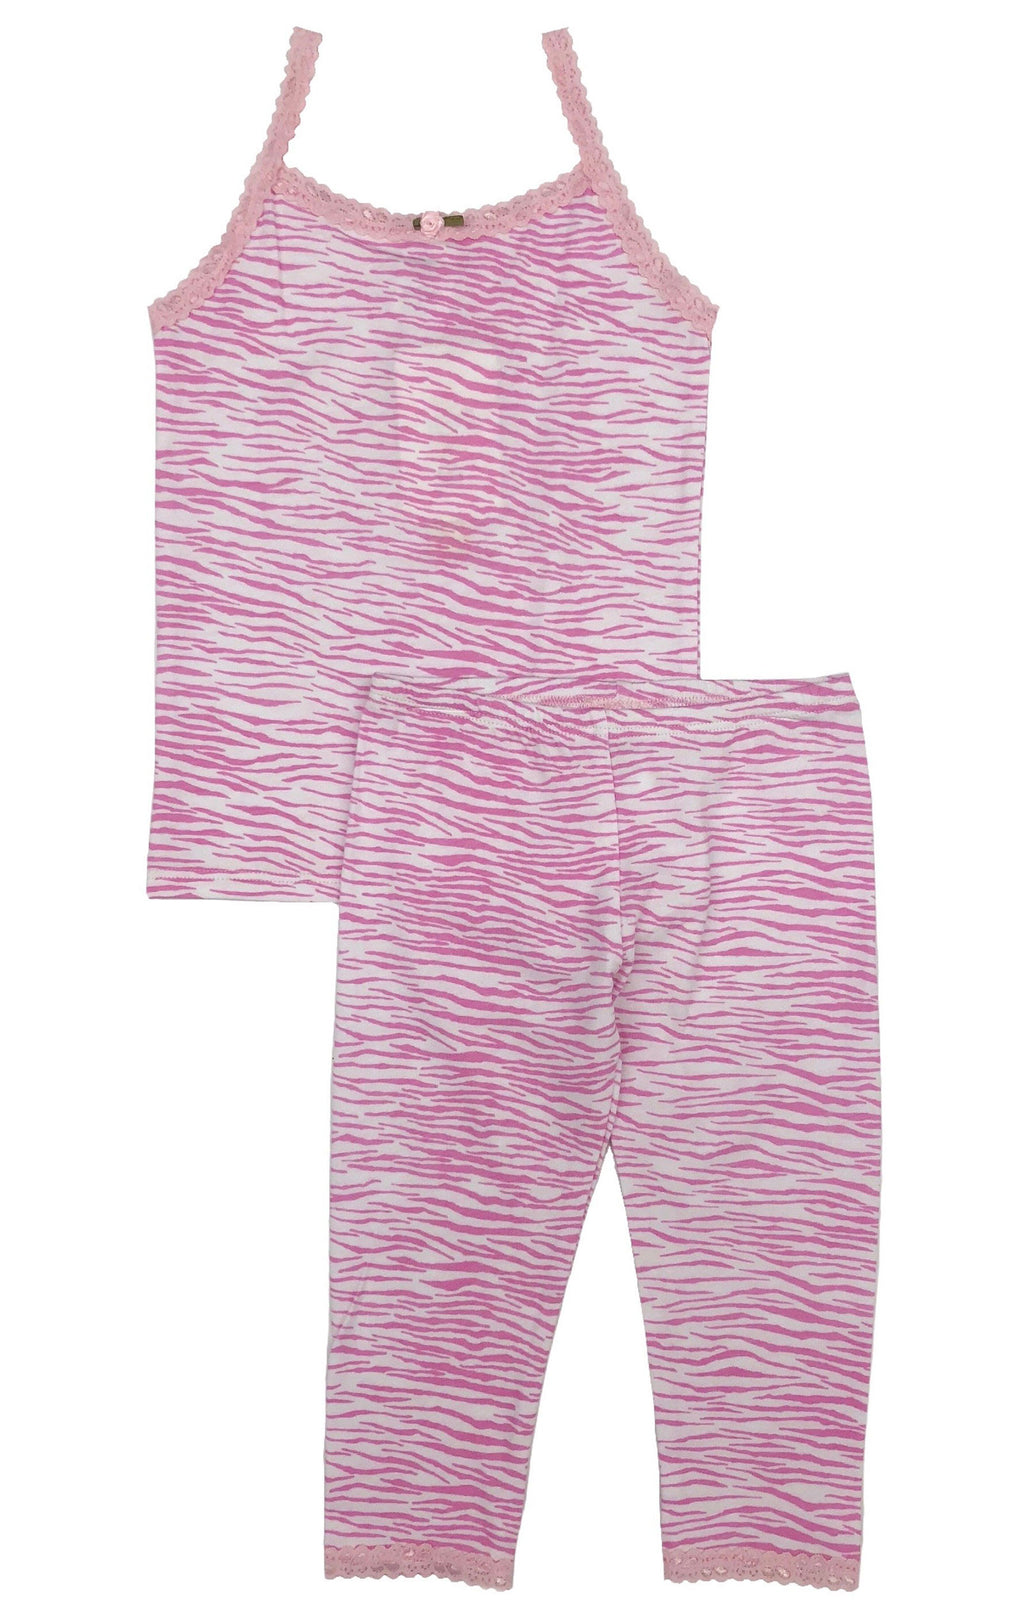 Esme Girls Pink Zebra PJ Set